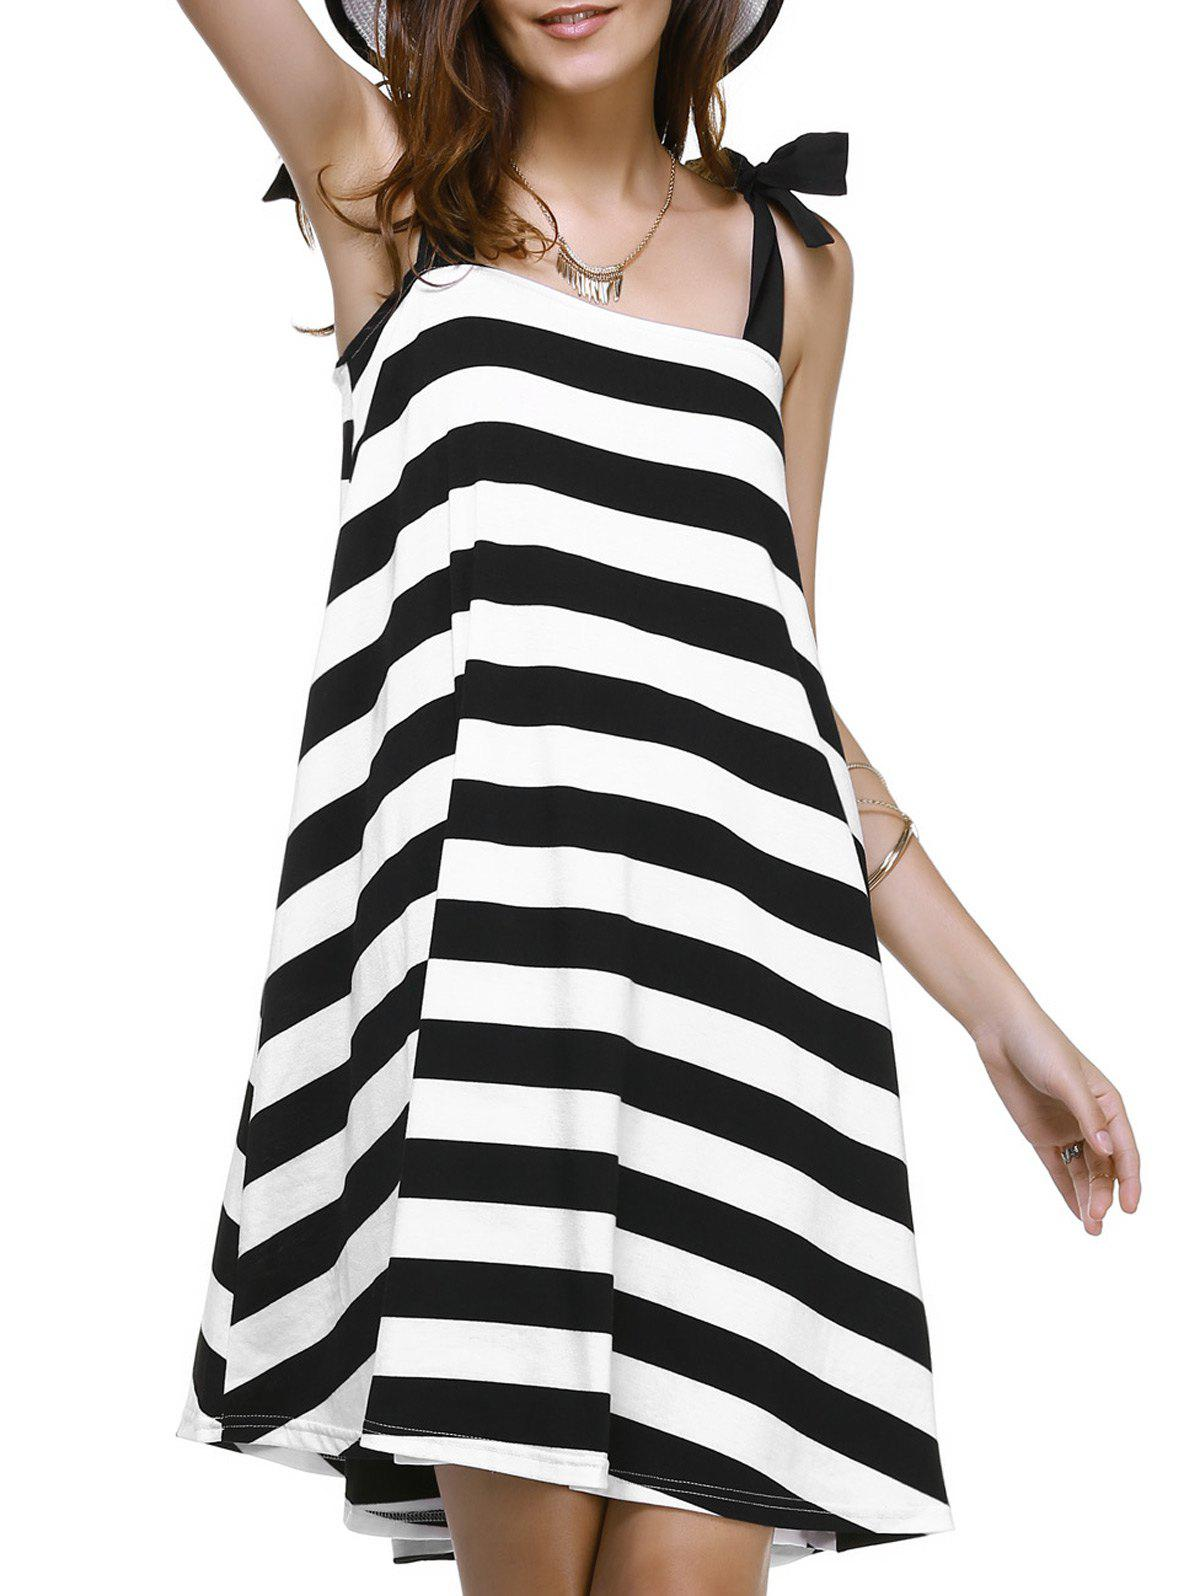 Sleeveless Bowknot Stripe Mini Swing Dress - WHITE/BLACK M